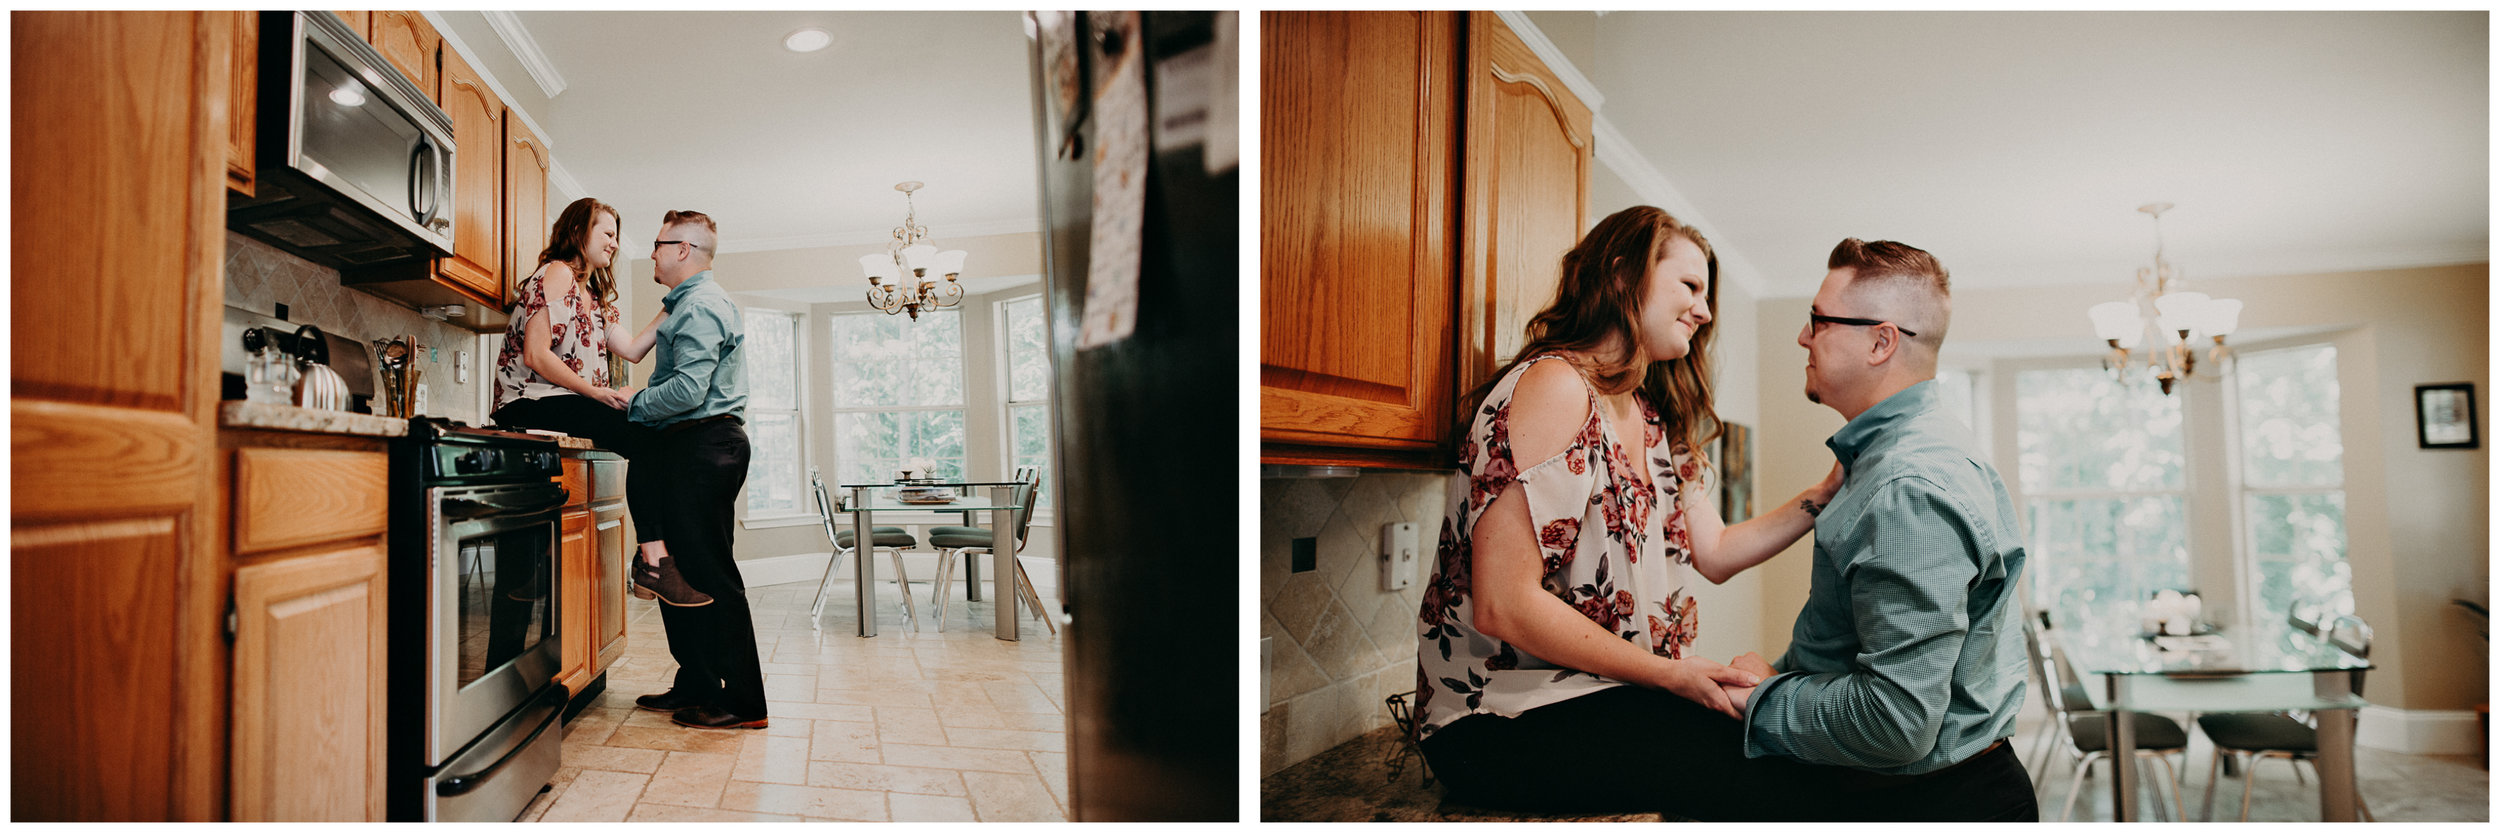 Intimate couples session25.jpg